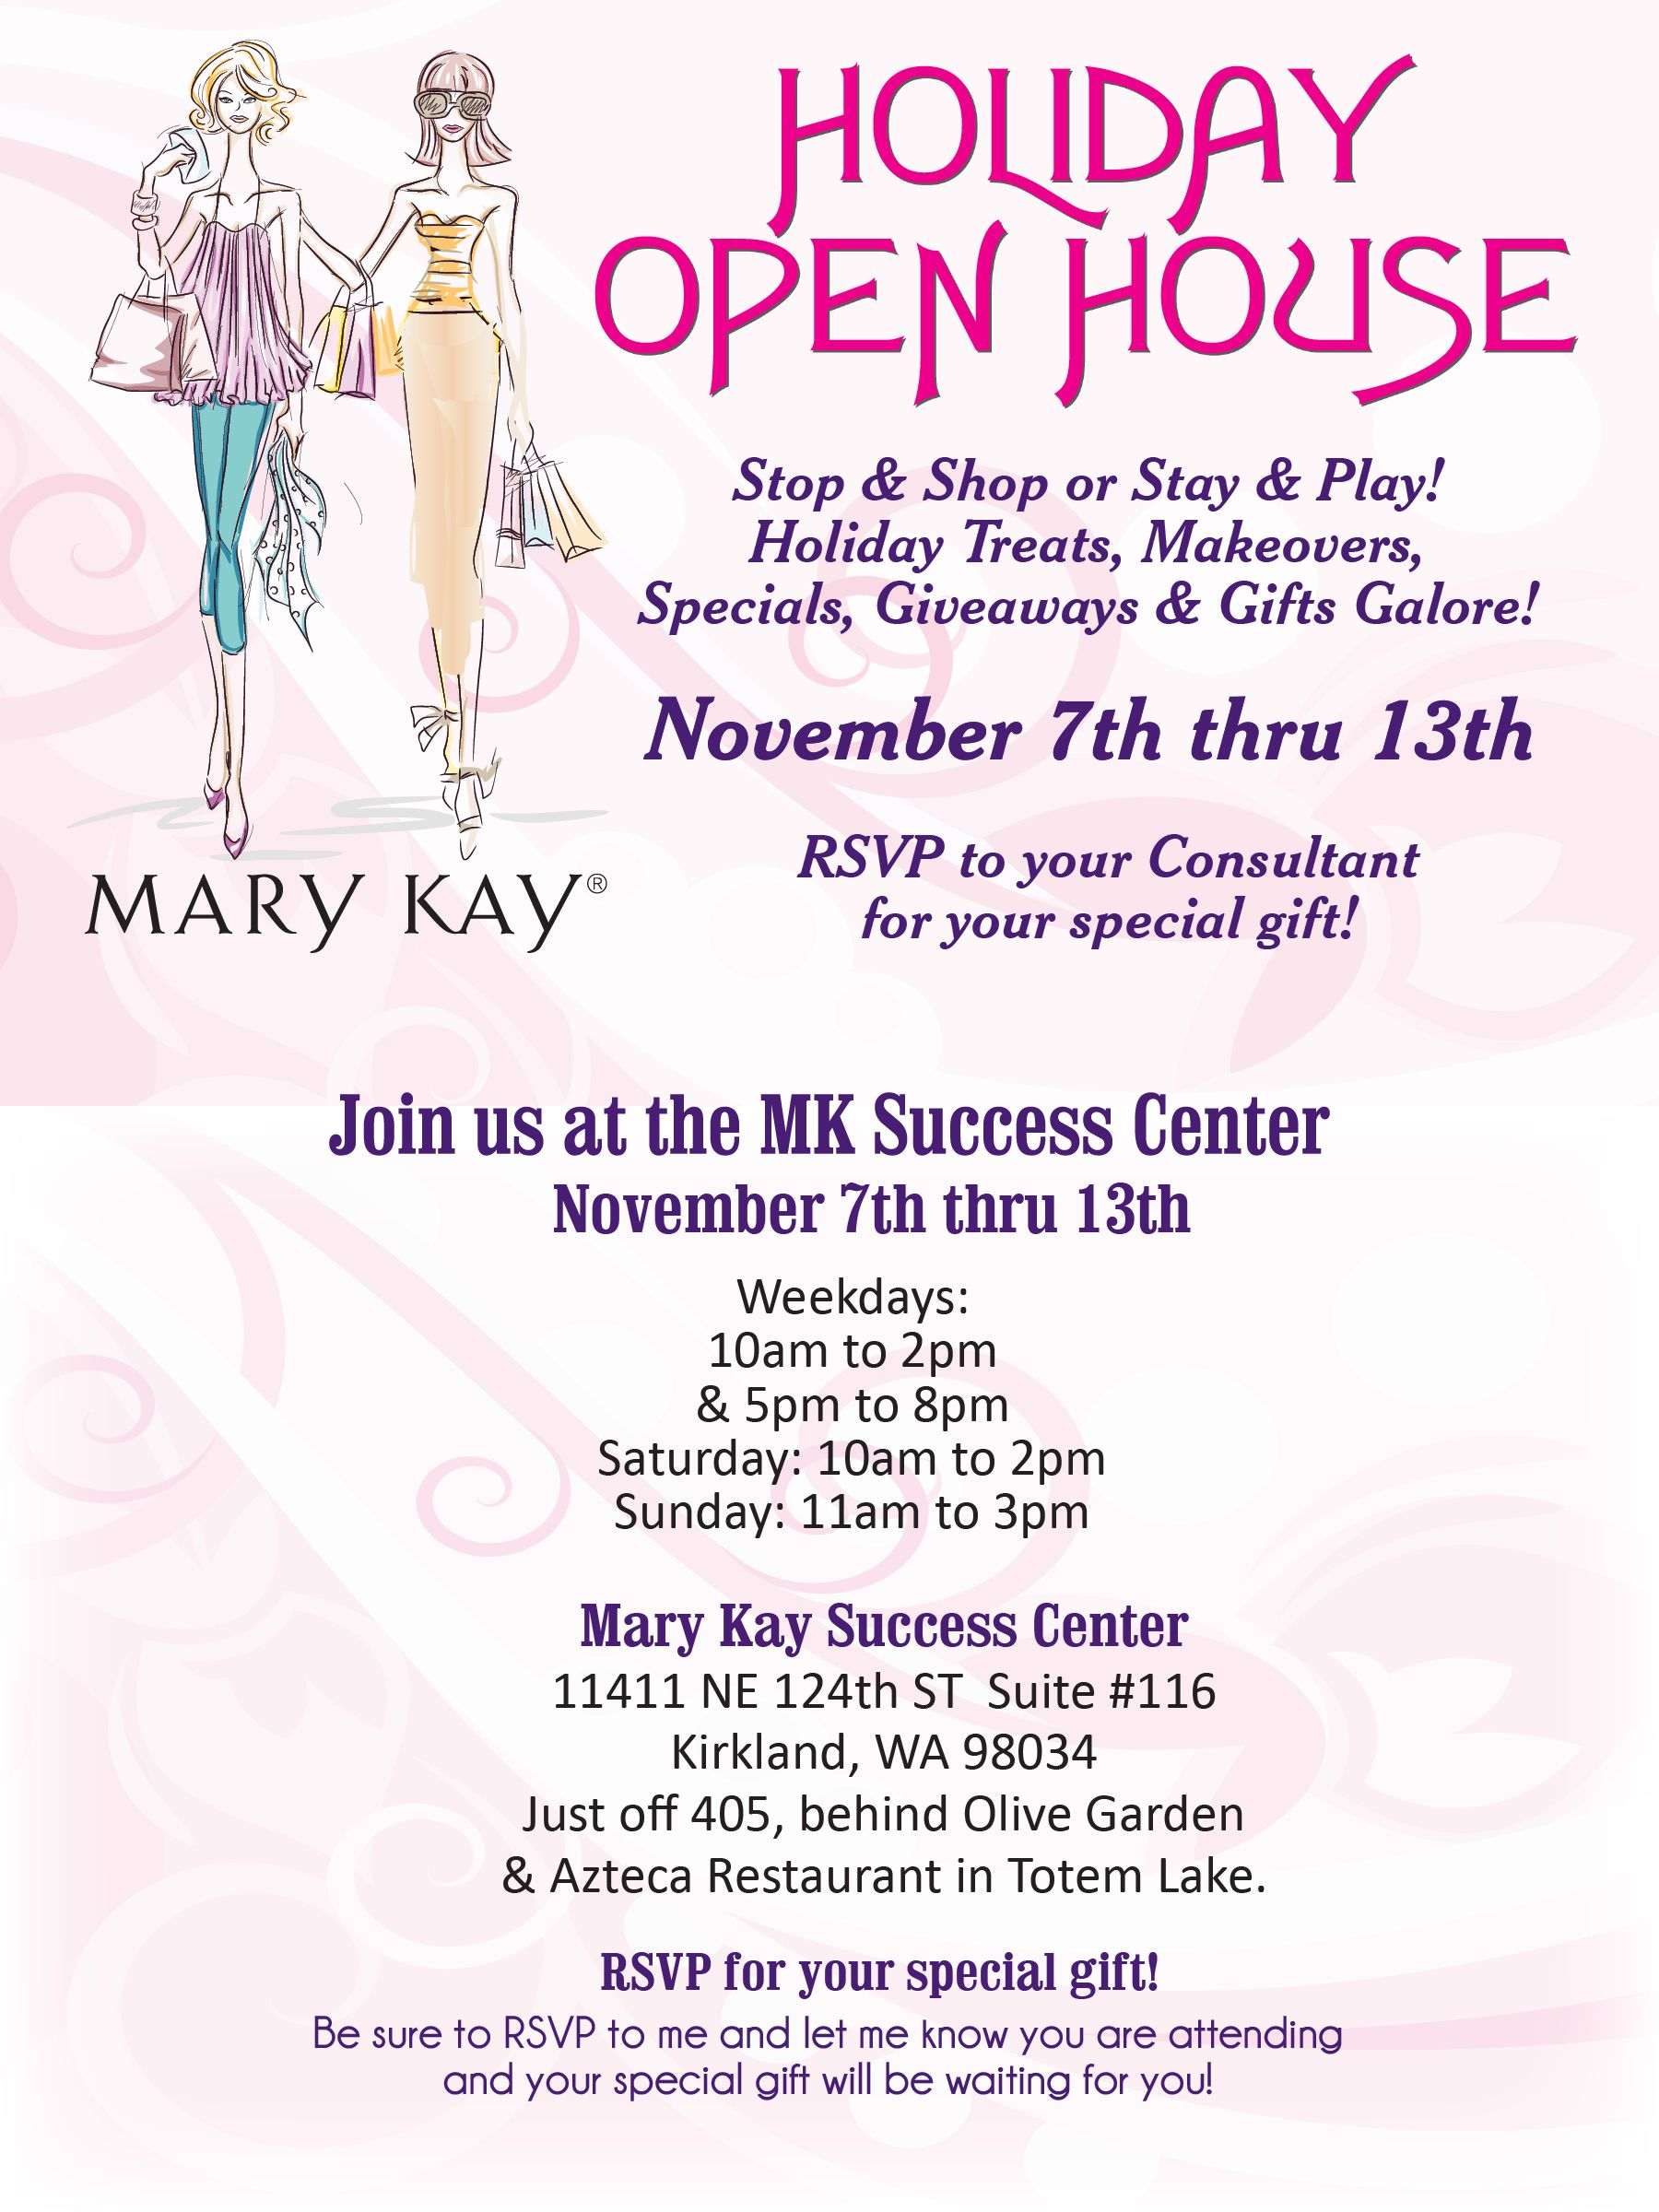 Mary kay holiday invitations google search mary kay mary kay holiday invitations google search stopboris Gallery